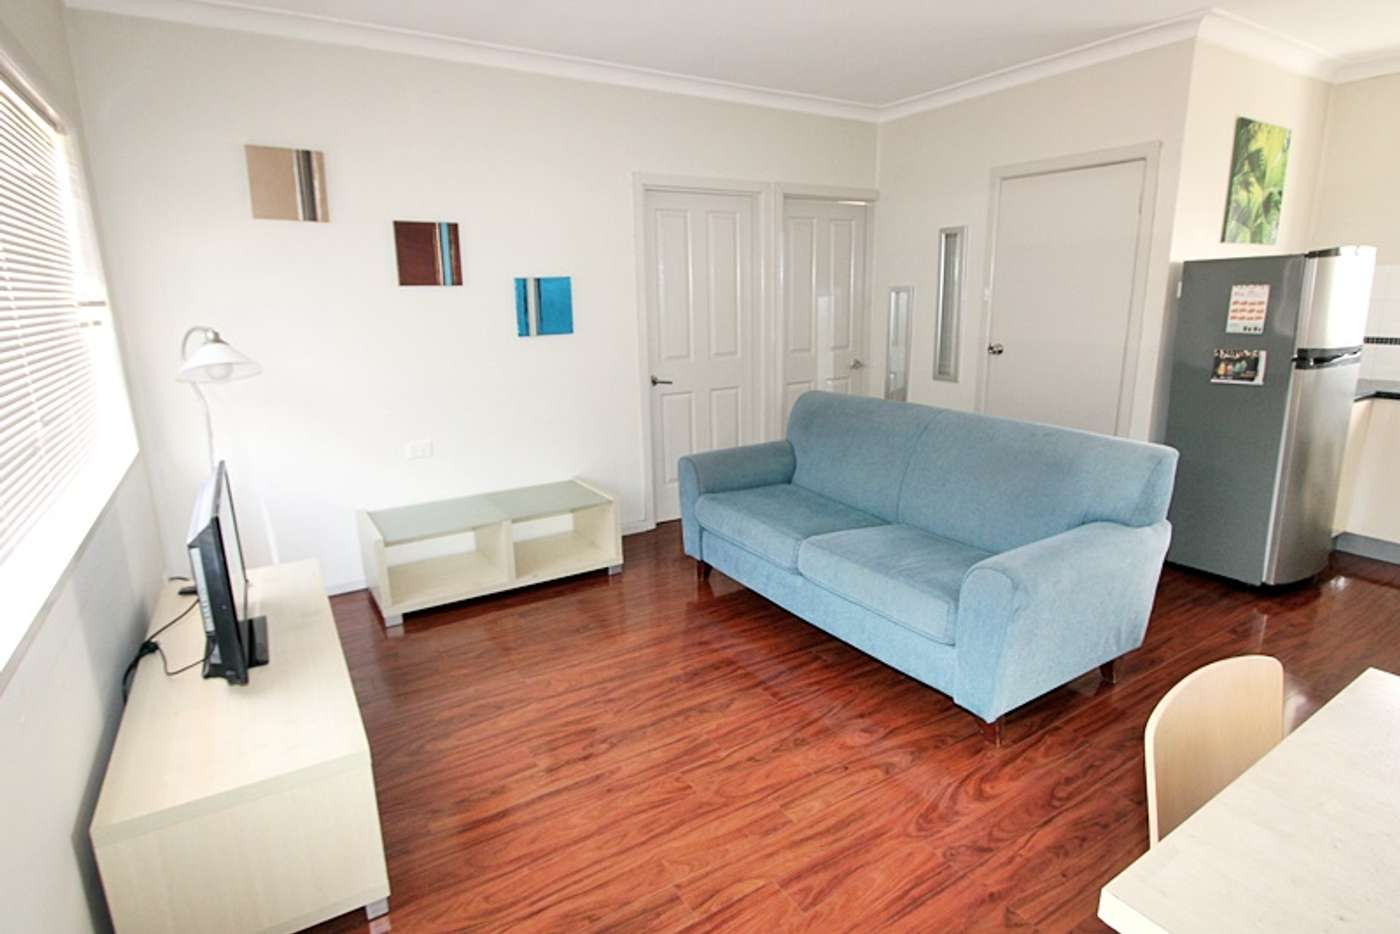 Seventh view of Homely unit listing, 7/32 Lampe Avenue, Wagga Wagga NSW 2650